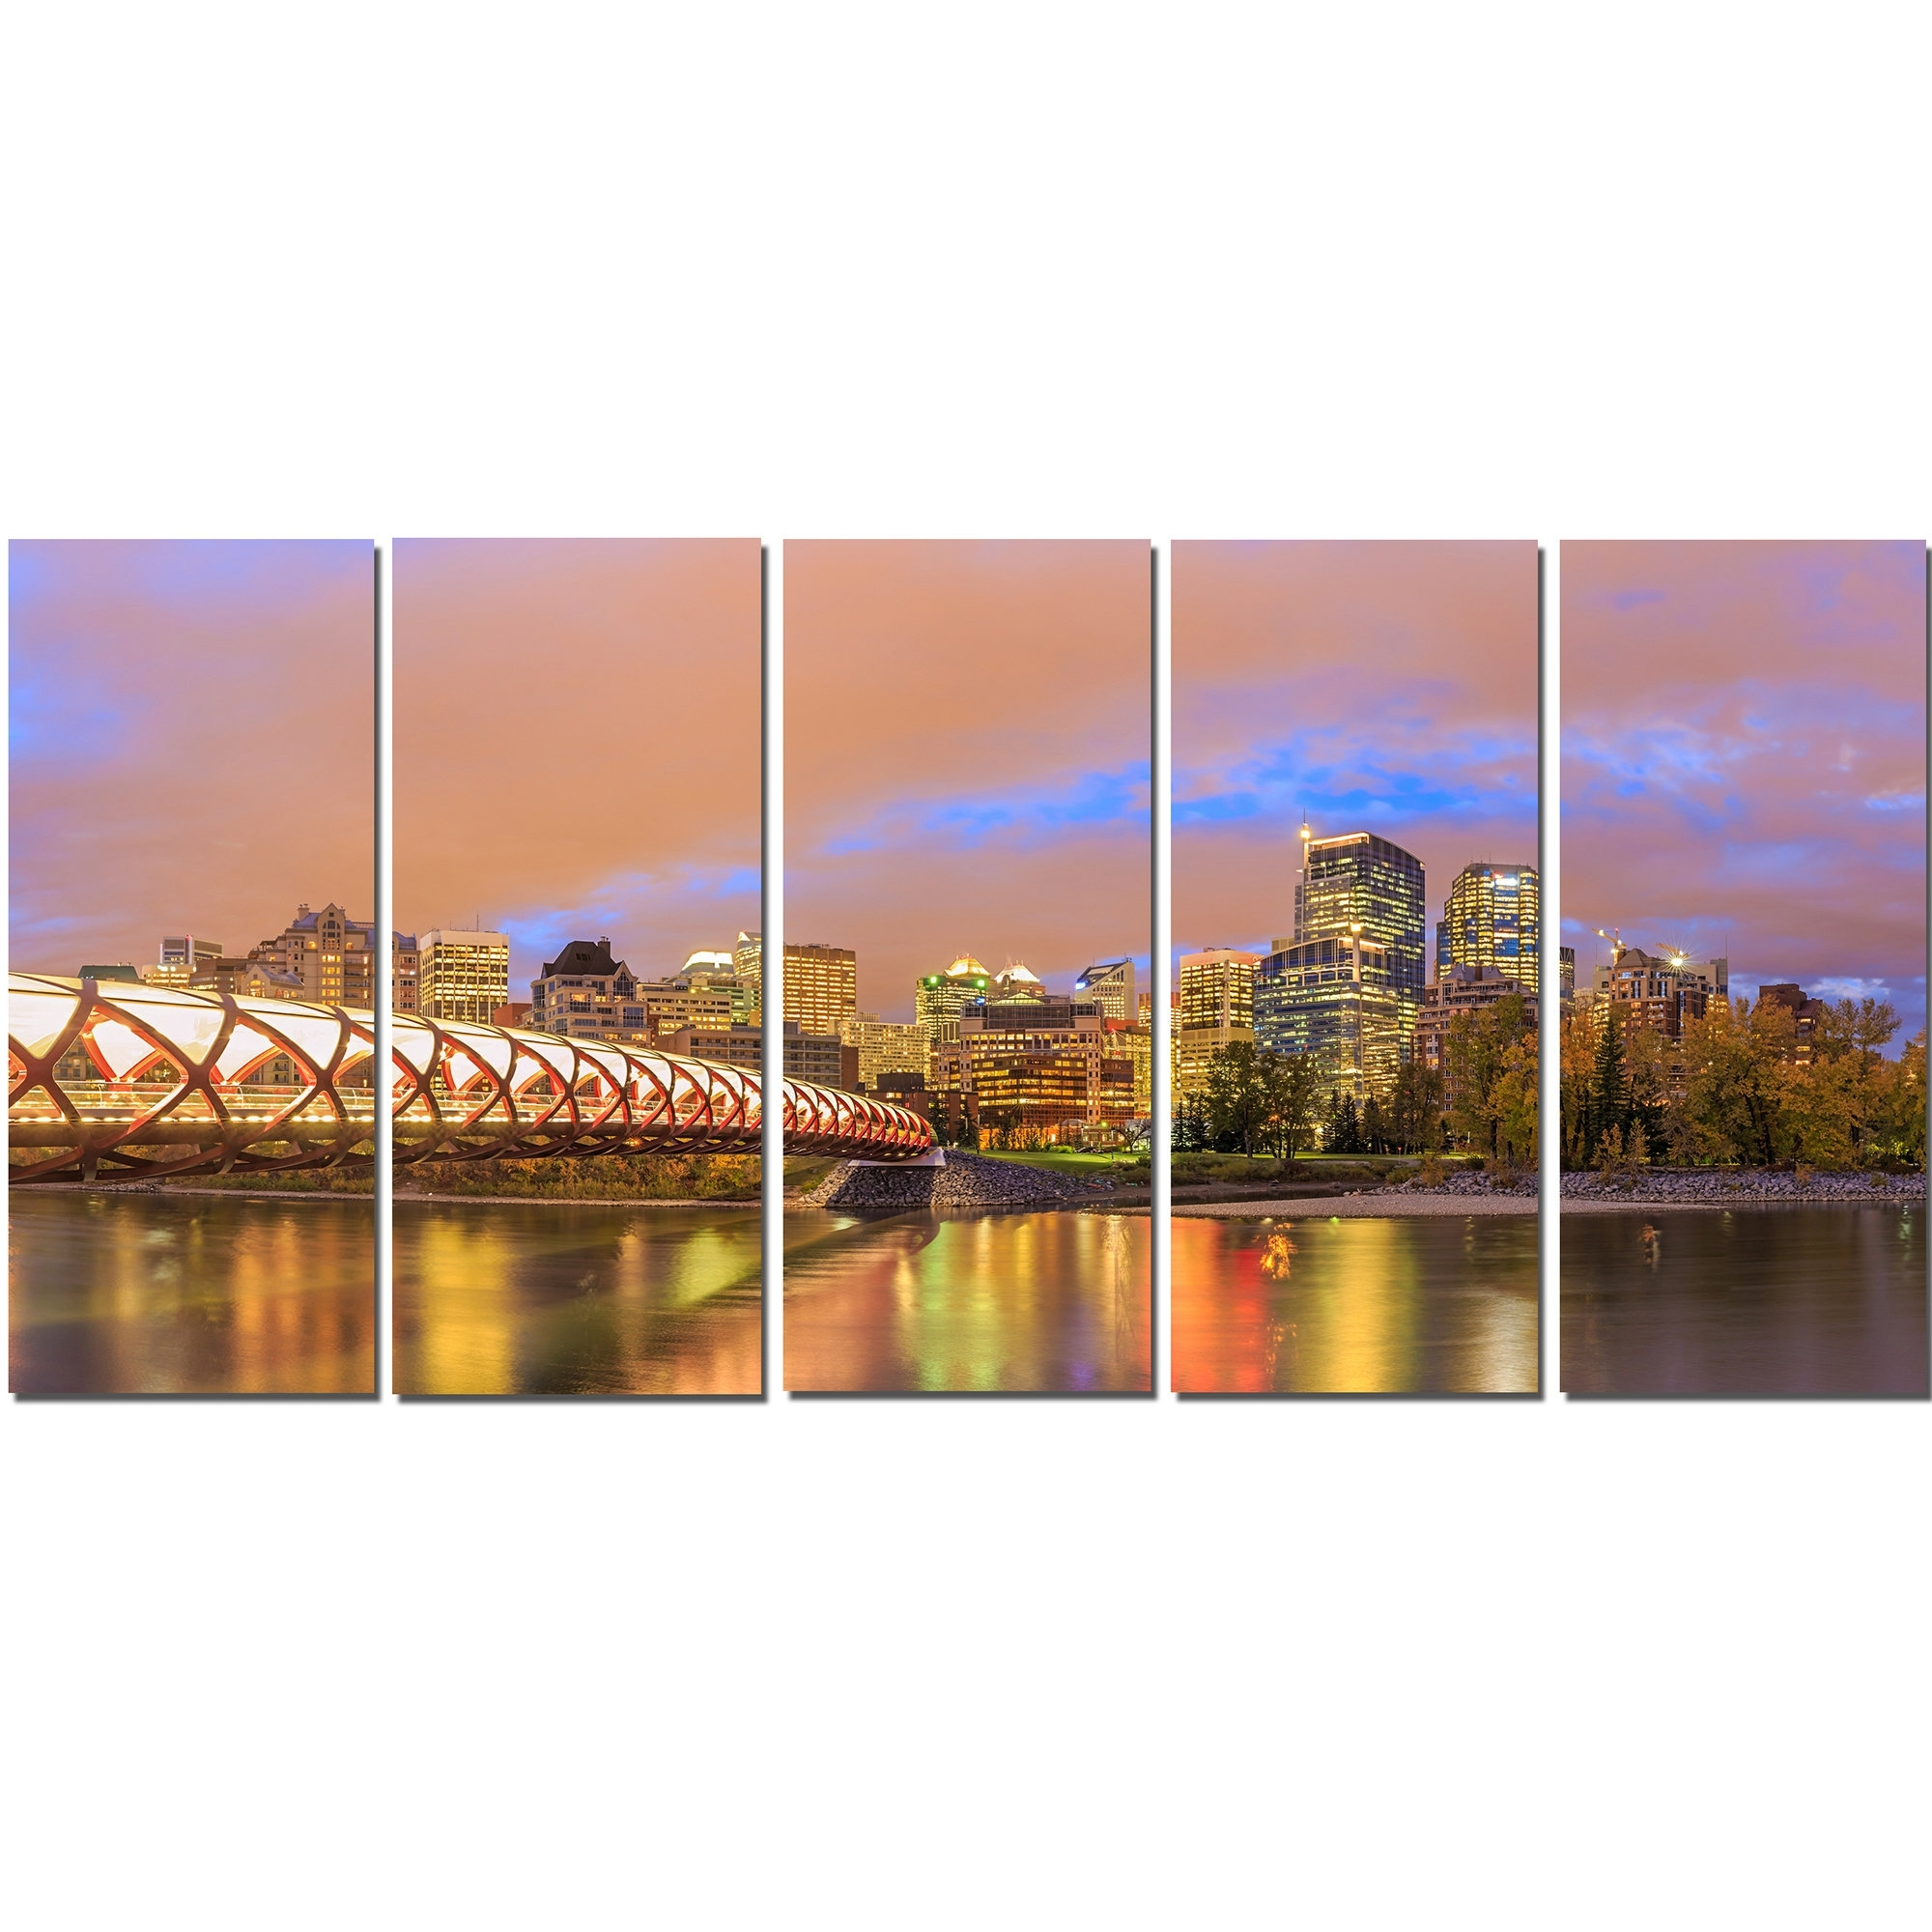 Calgary Canvas Wall Art Within Current Designart Calgary At Night 5 Piece Wall Art On Wrapped Canvas Set (View 9 of 15)